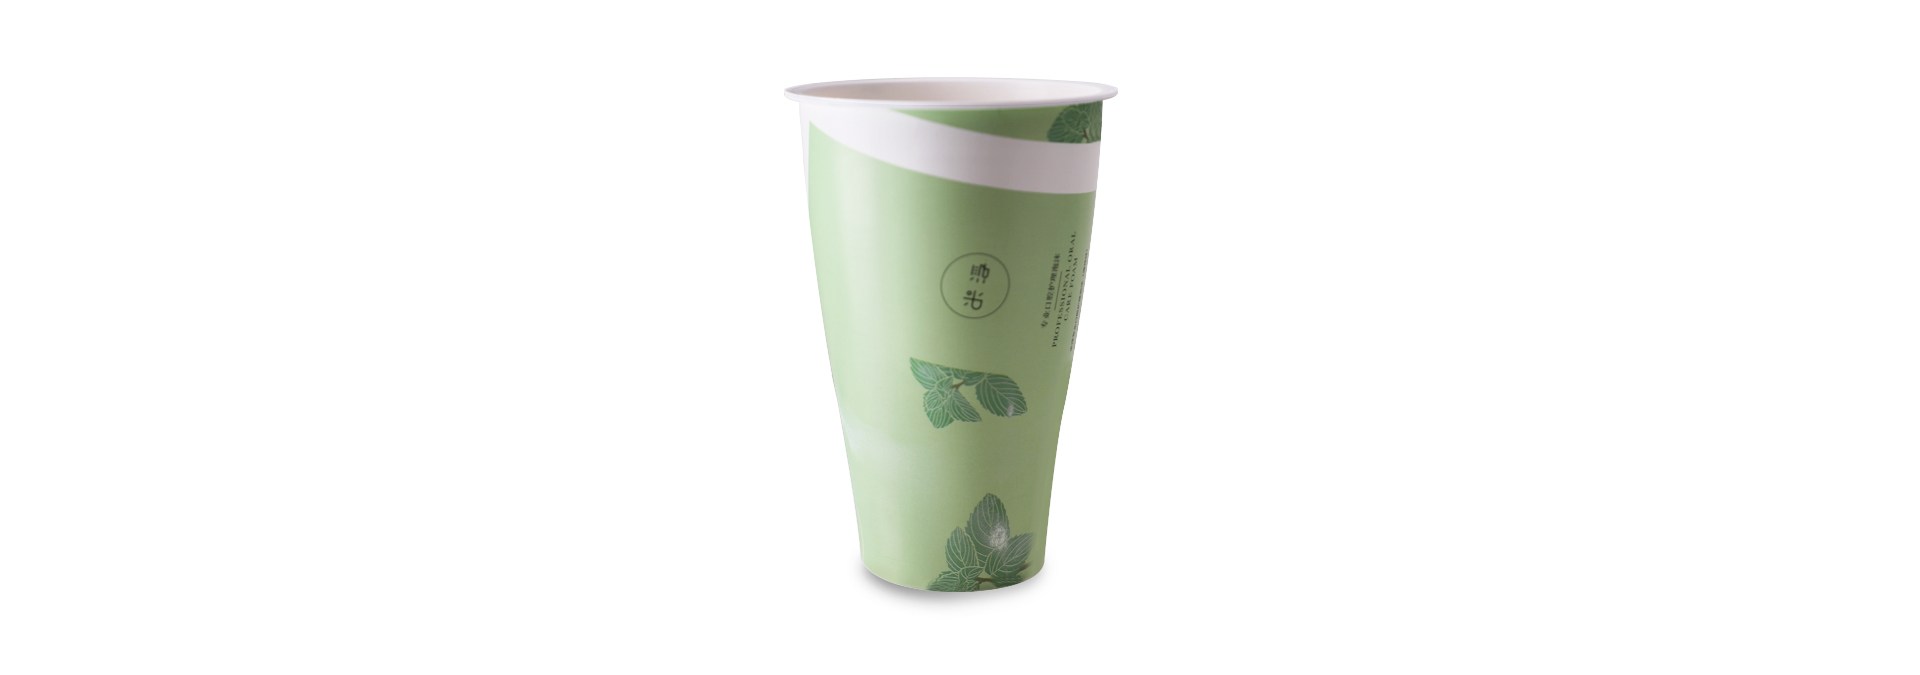 350ml curved cup (81 calibre)